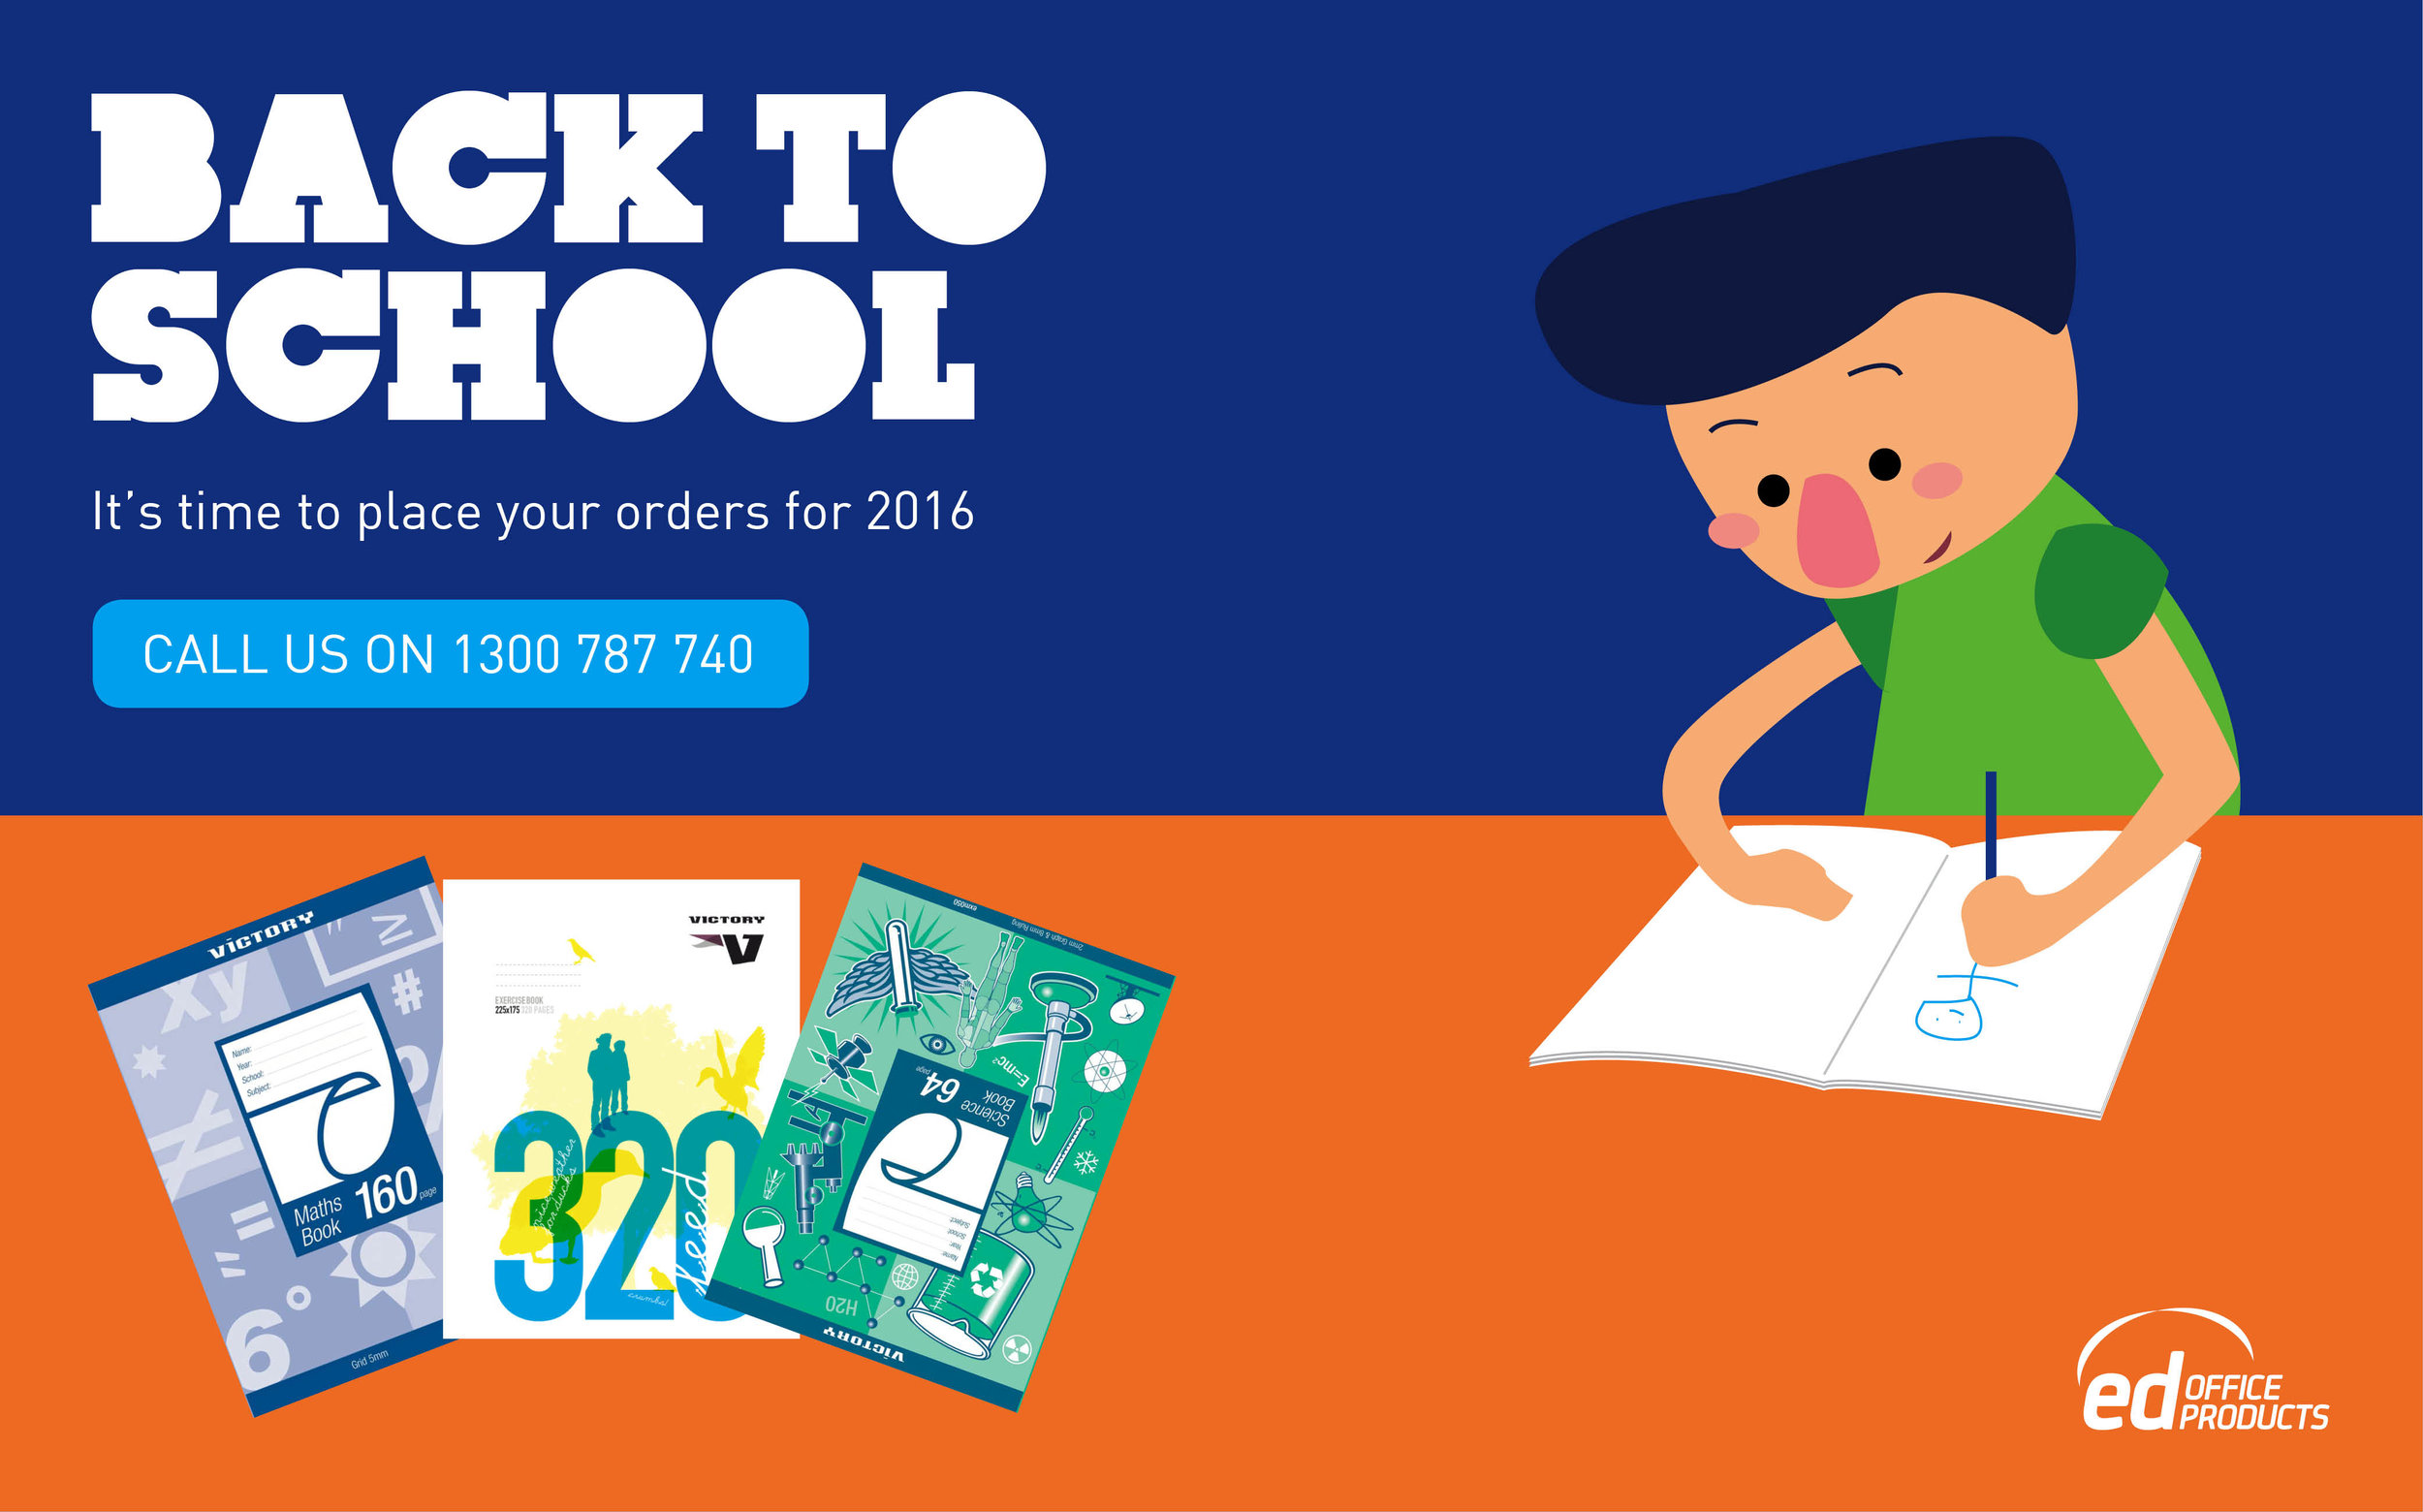 Email Marketing Design - Back to school